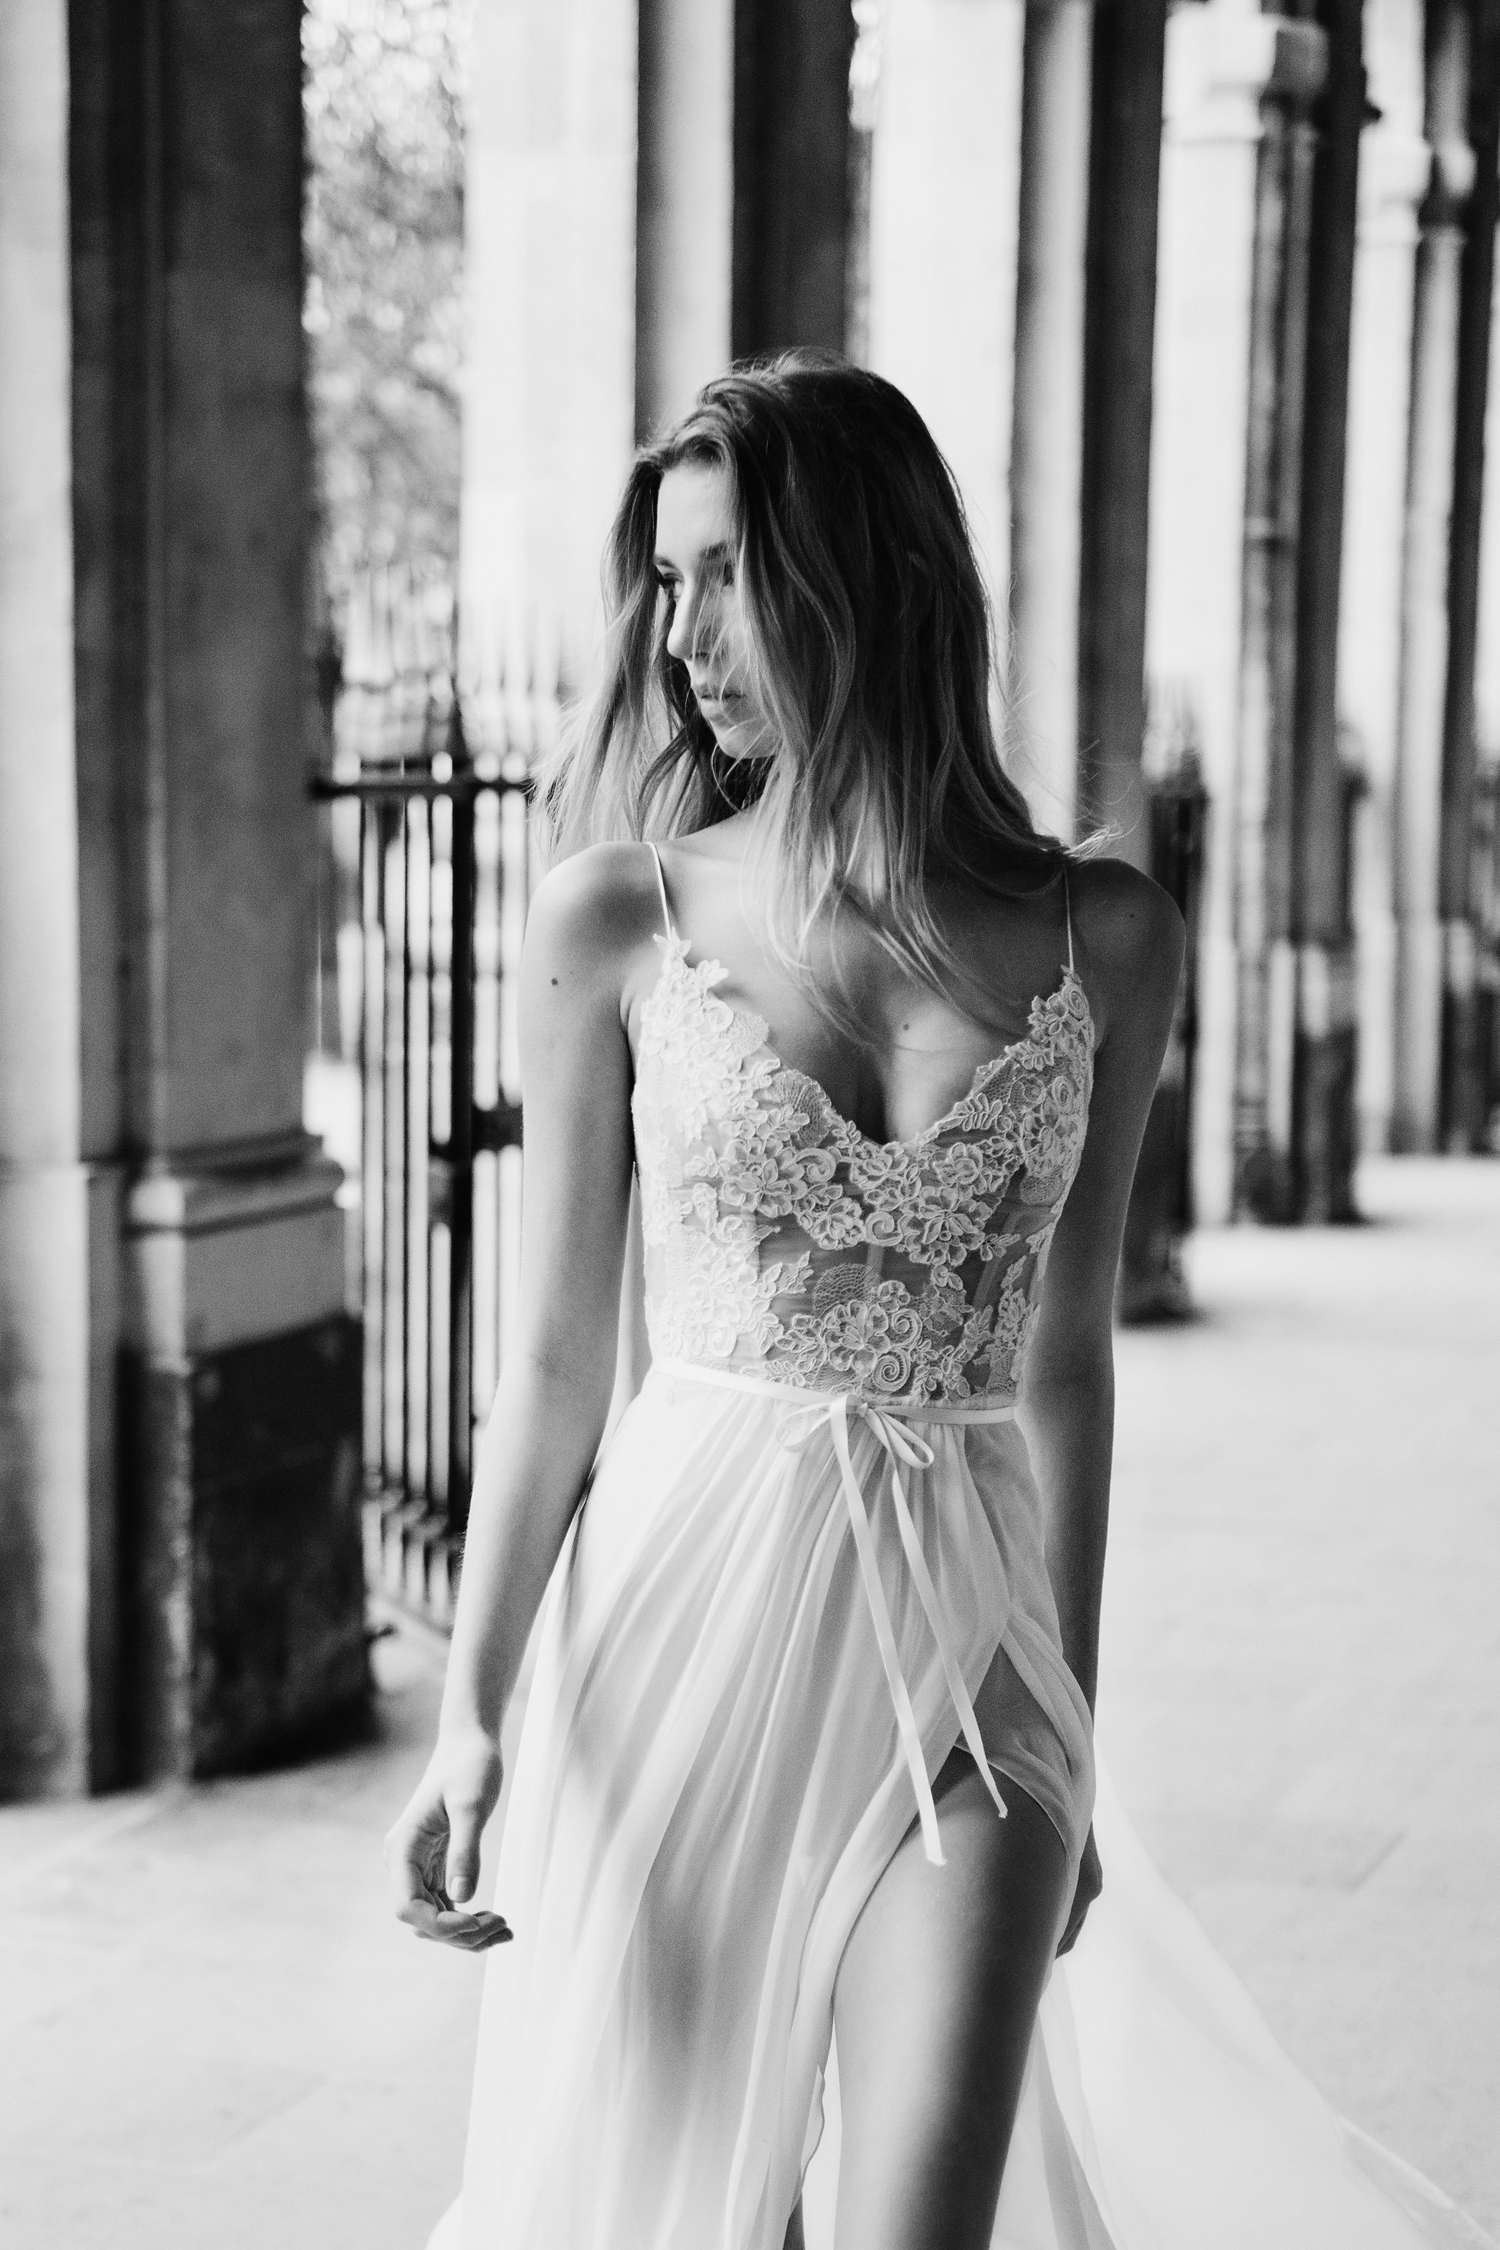 katie mitchell monique lhuillier bridal paris france wedding photographer_21.jpg